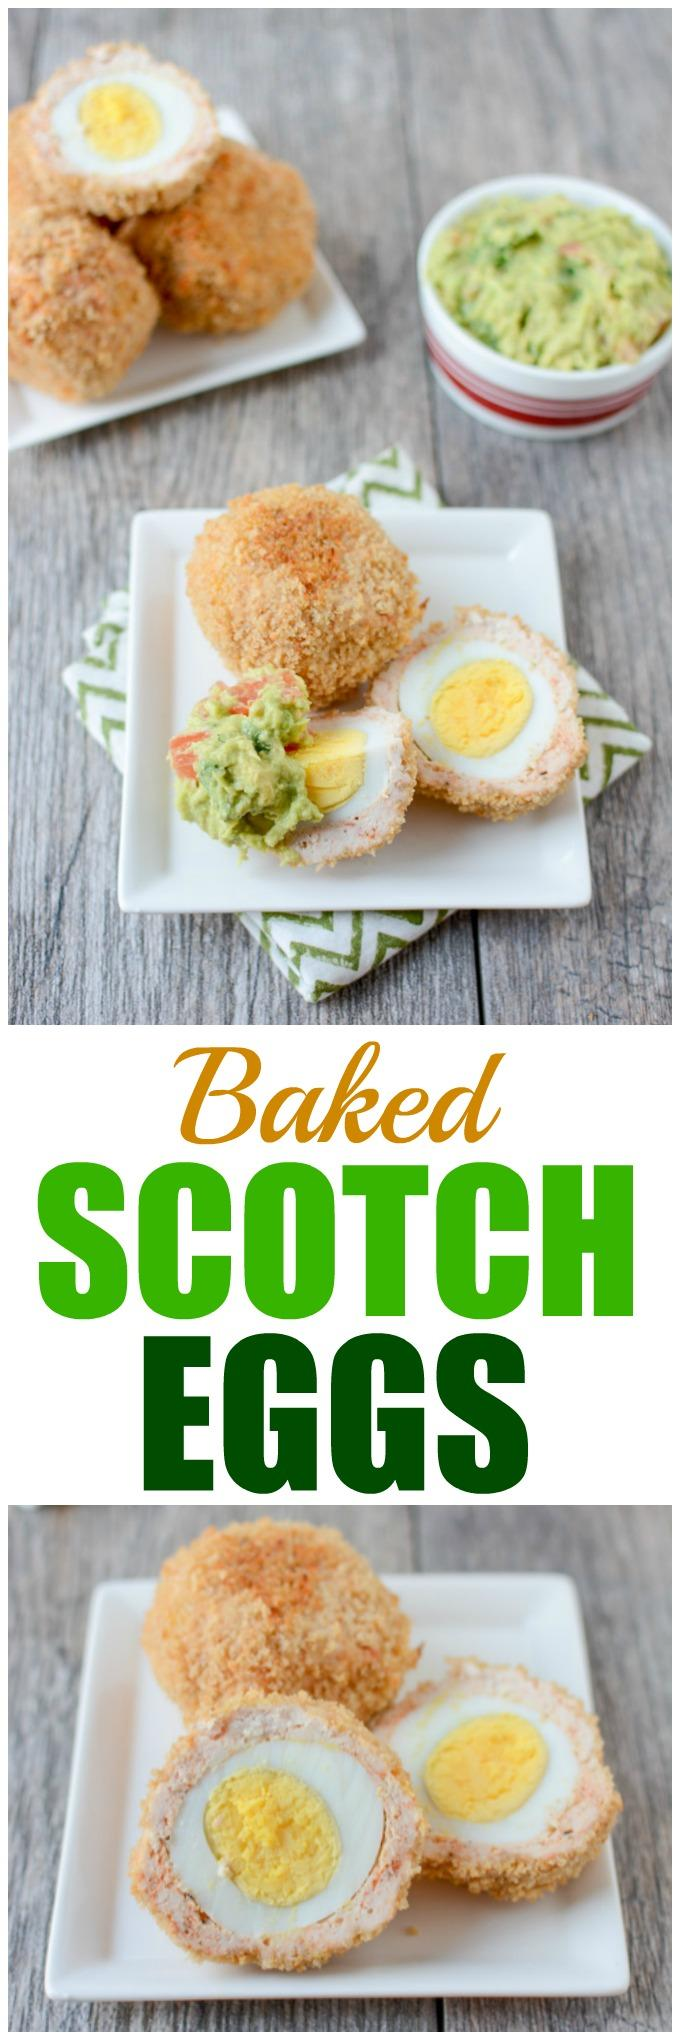 This recipe for Baked Scotch Eggs makes a great high protein breakfast. Enjoy them warm or cold and serve with guacamole for some added healthy fats!